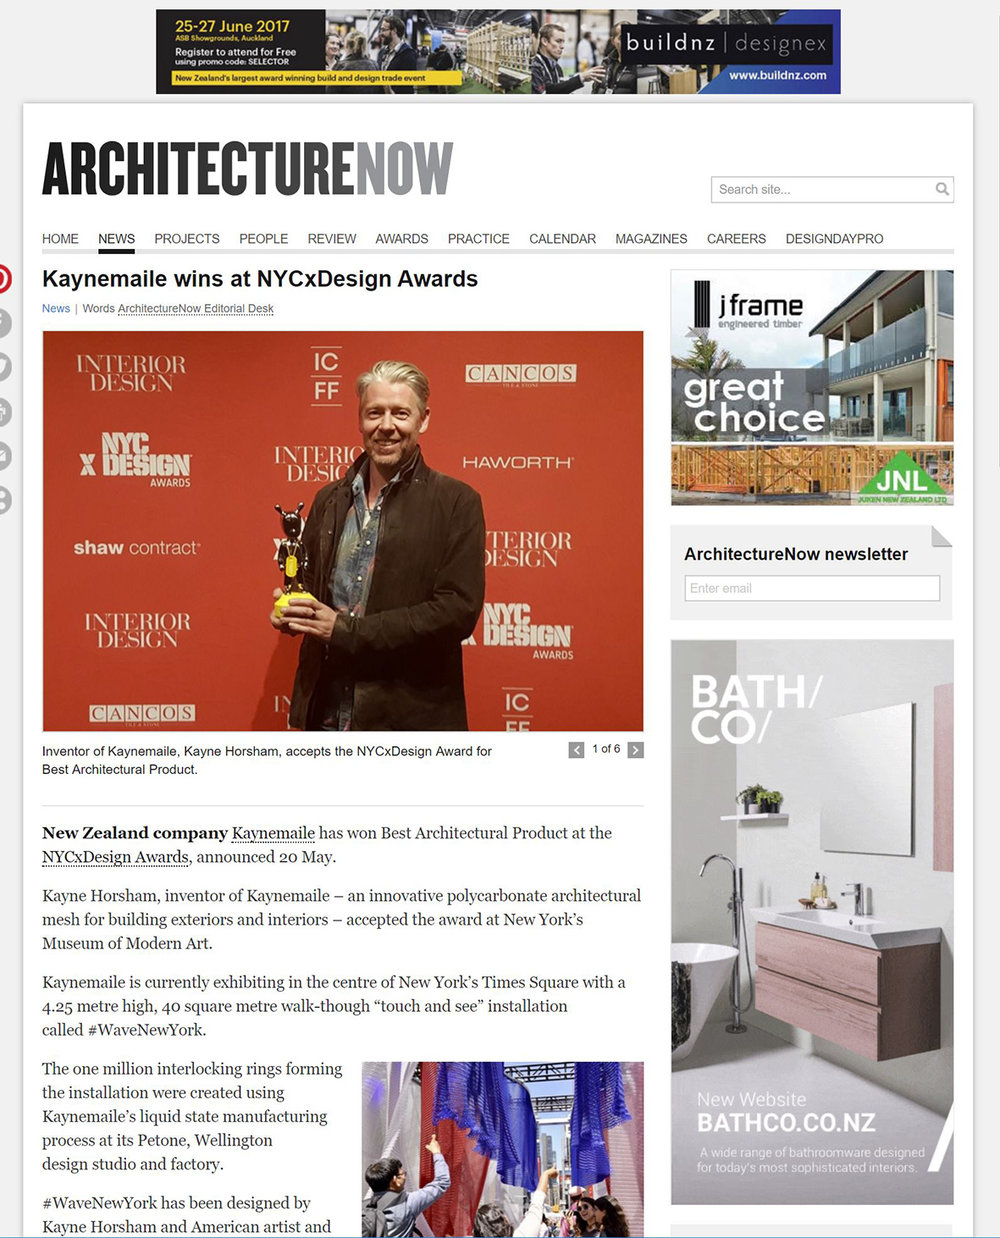 Architecture Now: Kaynemaile wins at NYCxDesign Awards